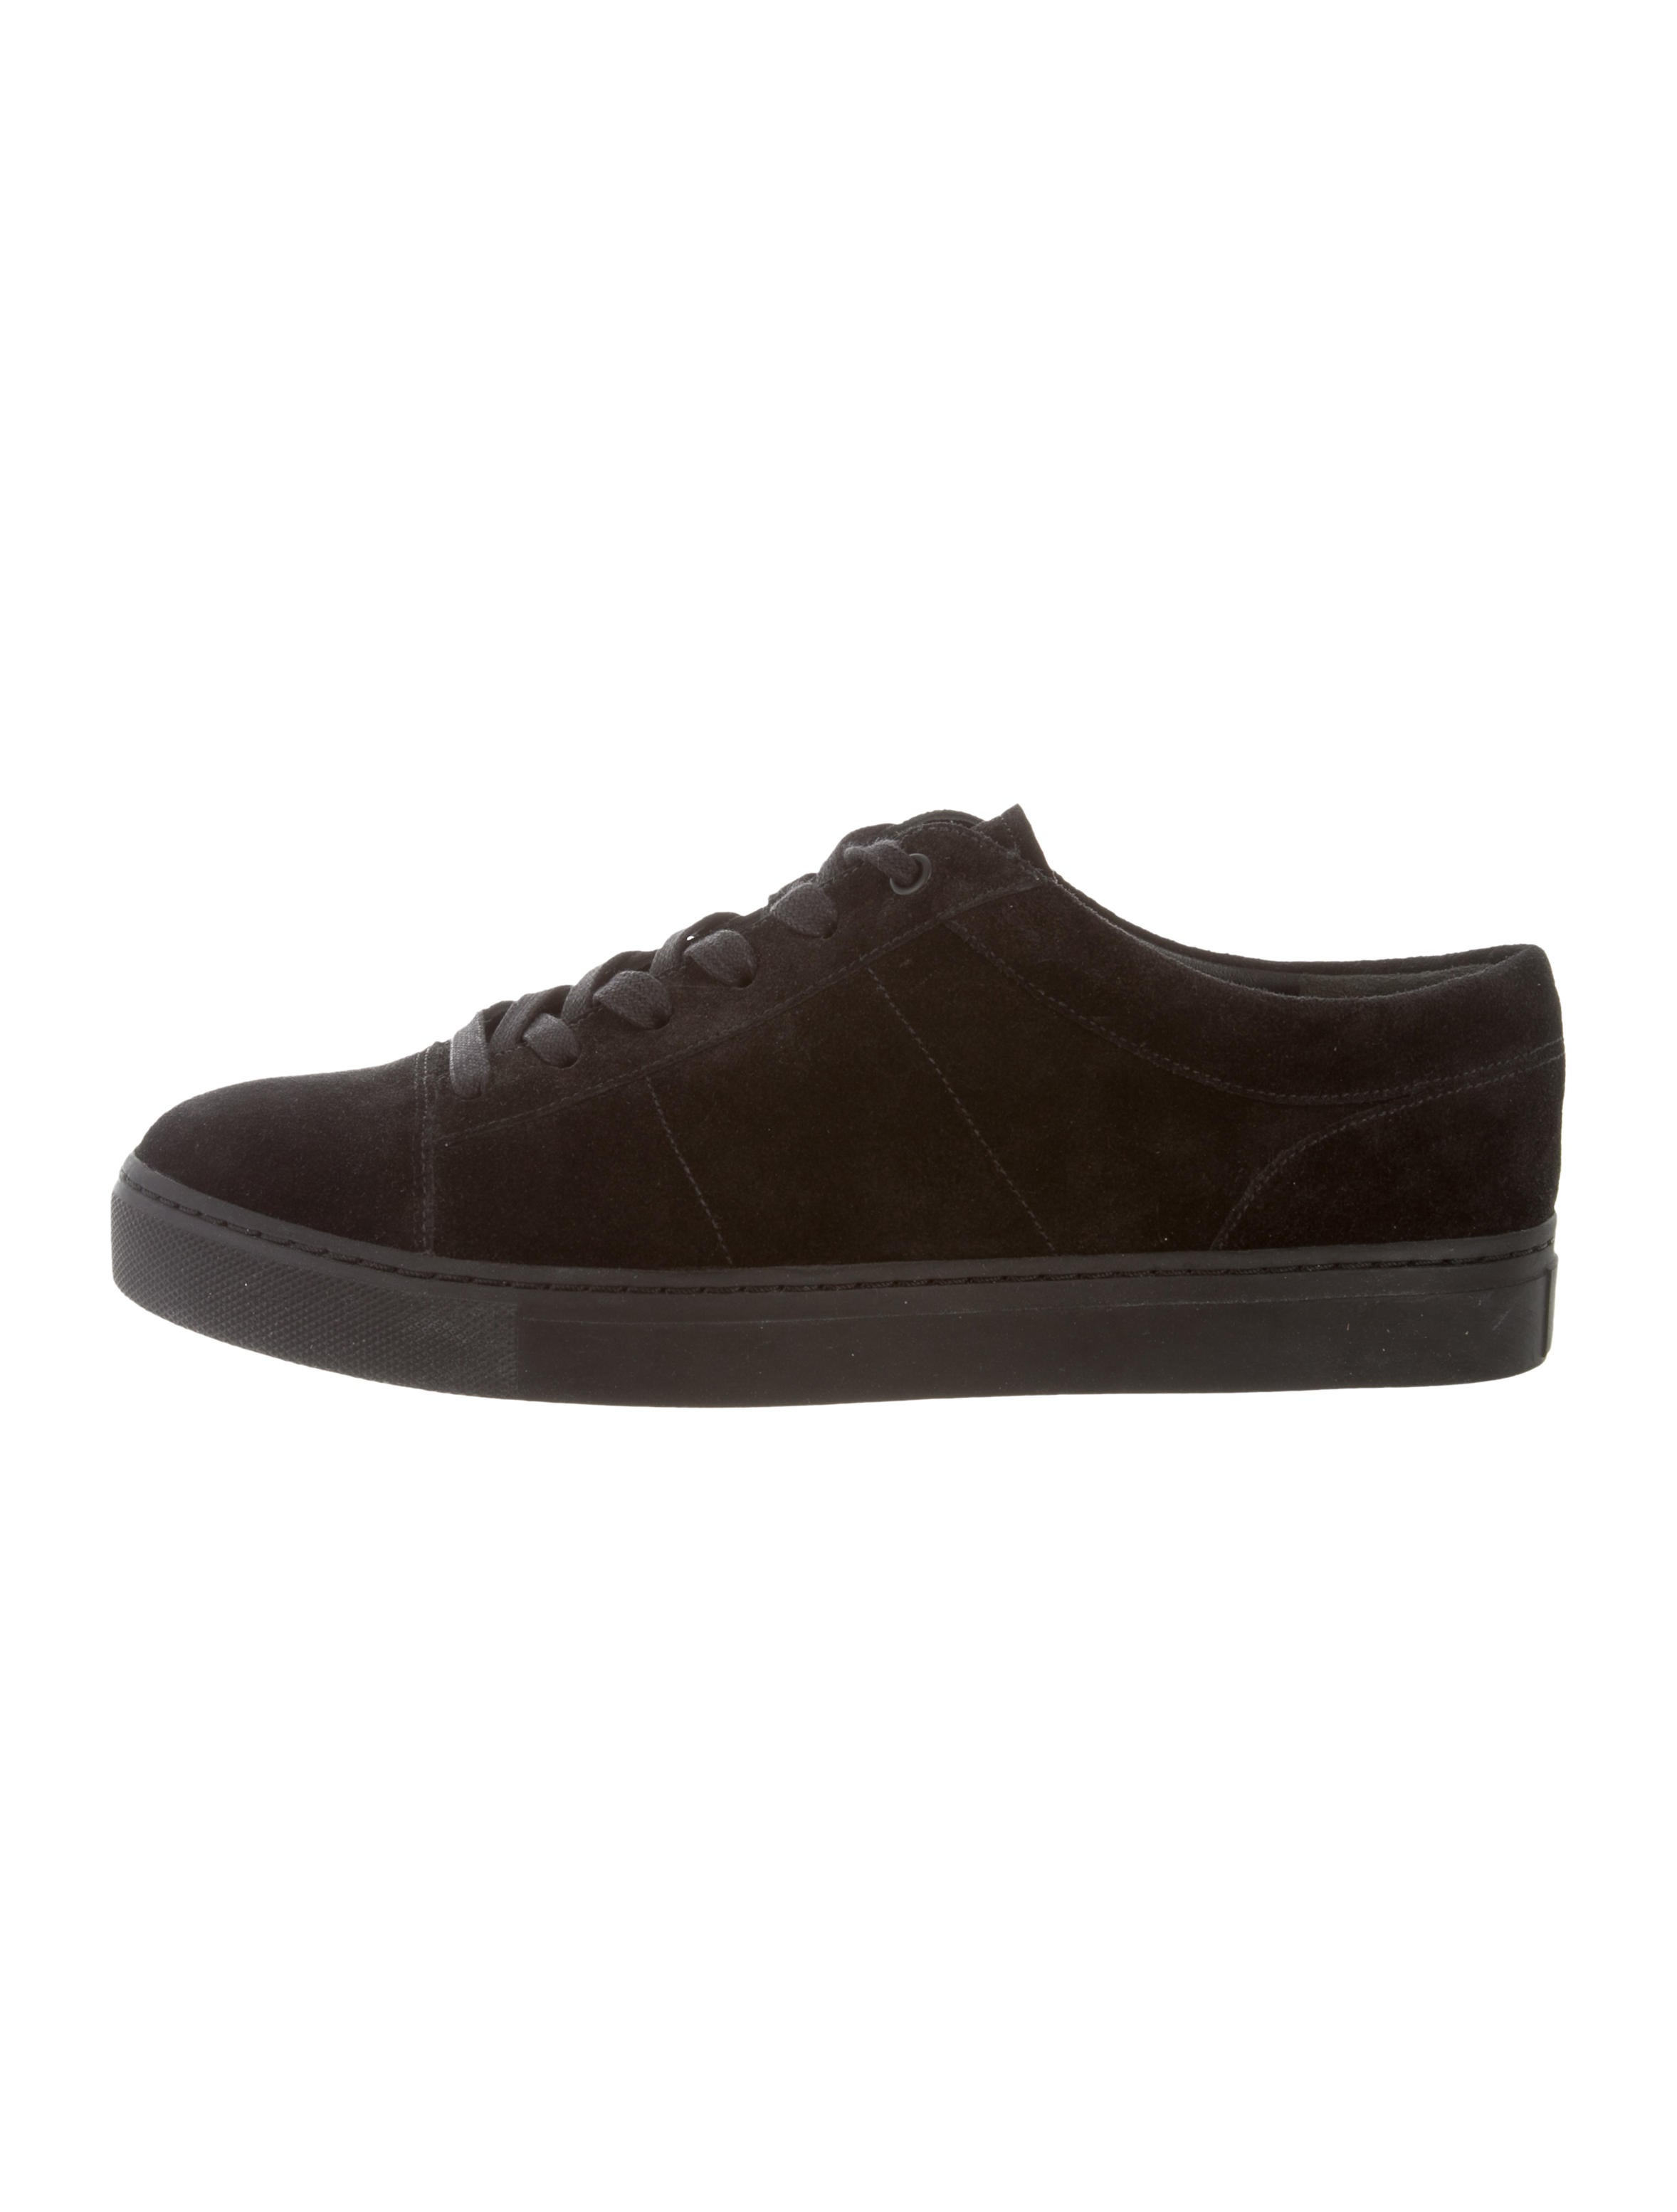 588e76f760b2 Vince Afton Suede Sneakers w  Tags - Shoes - WVN42459